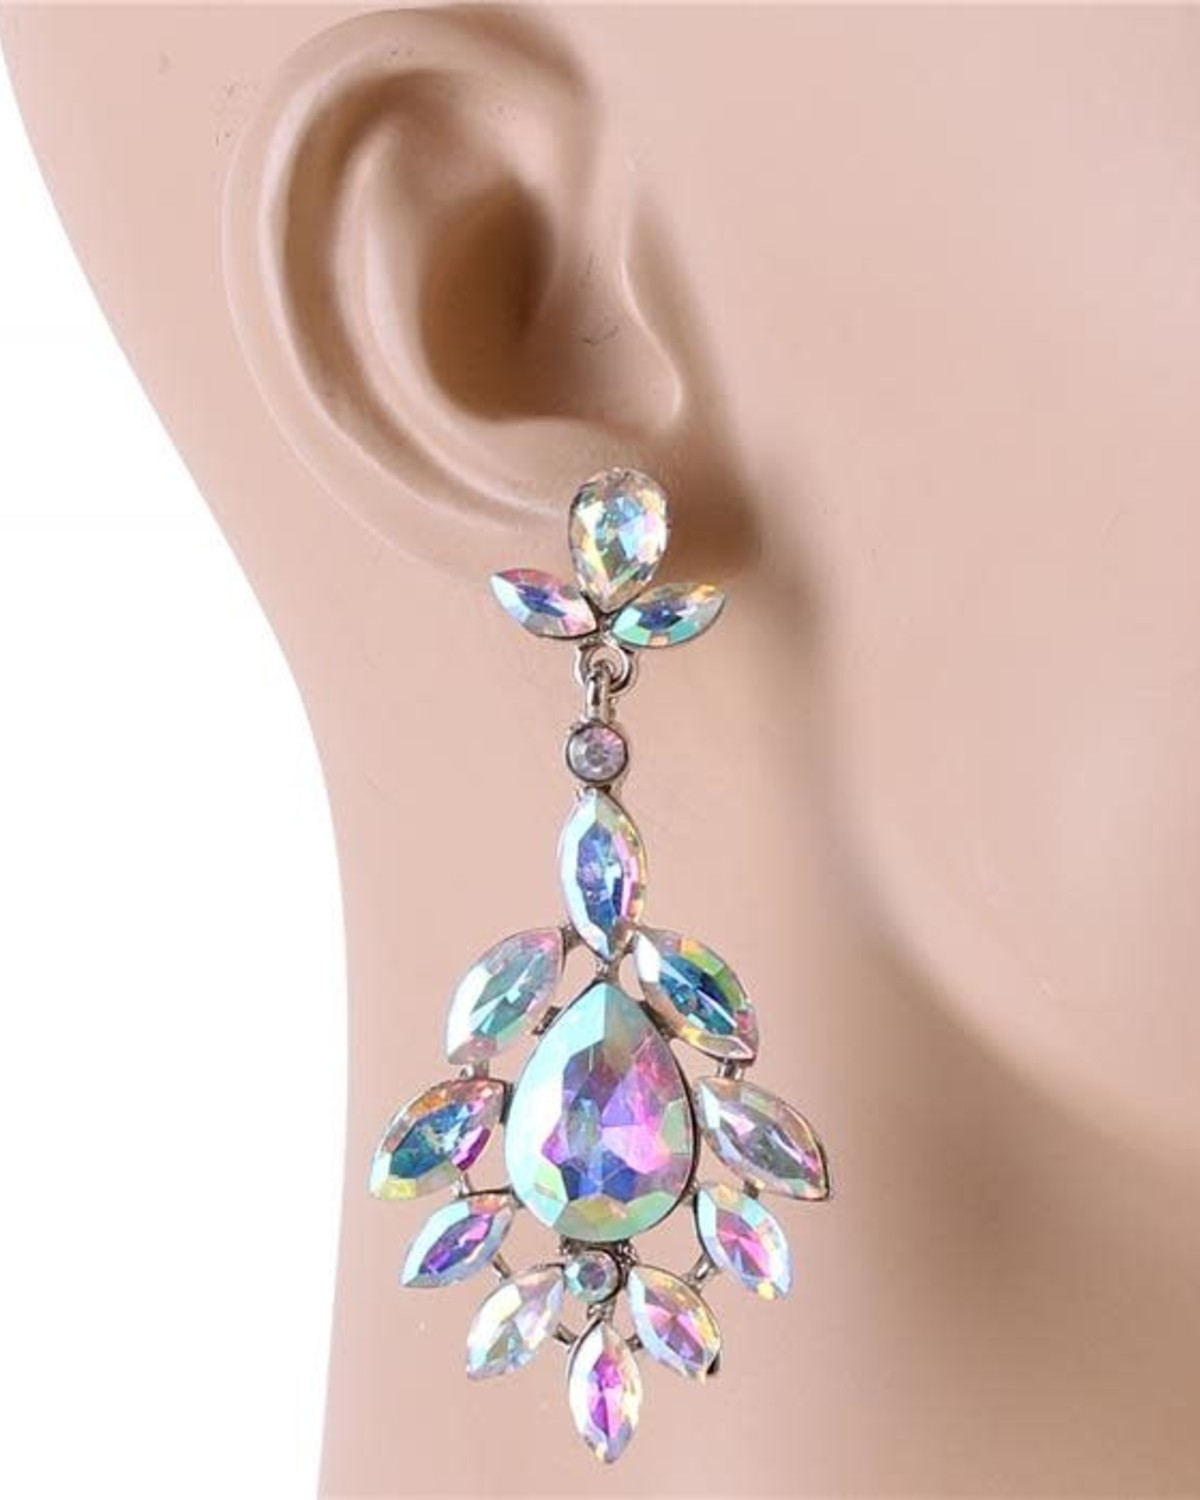 Hard To Find Jewel Earrings